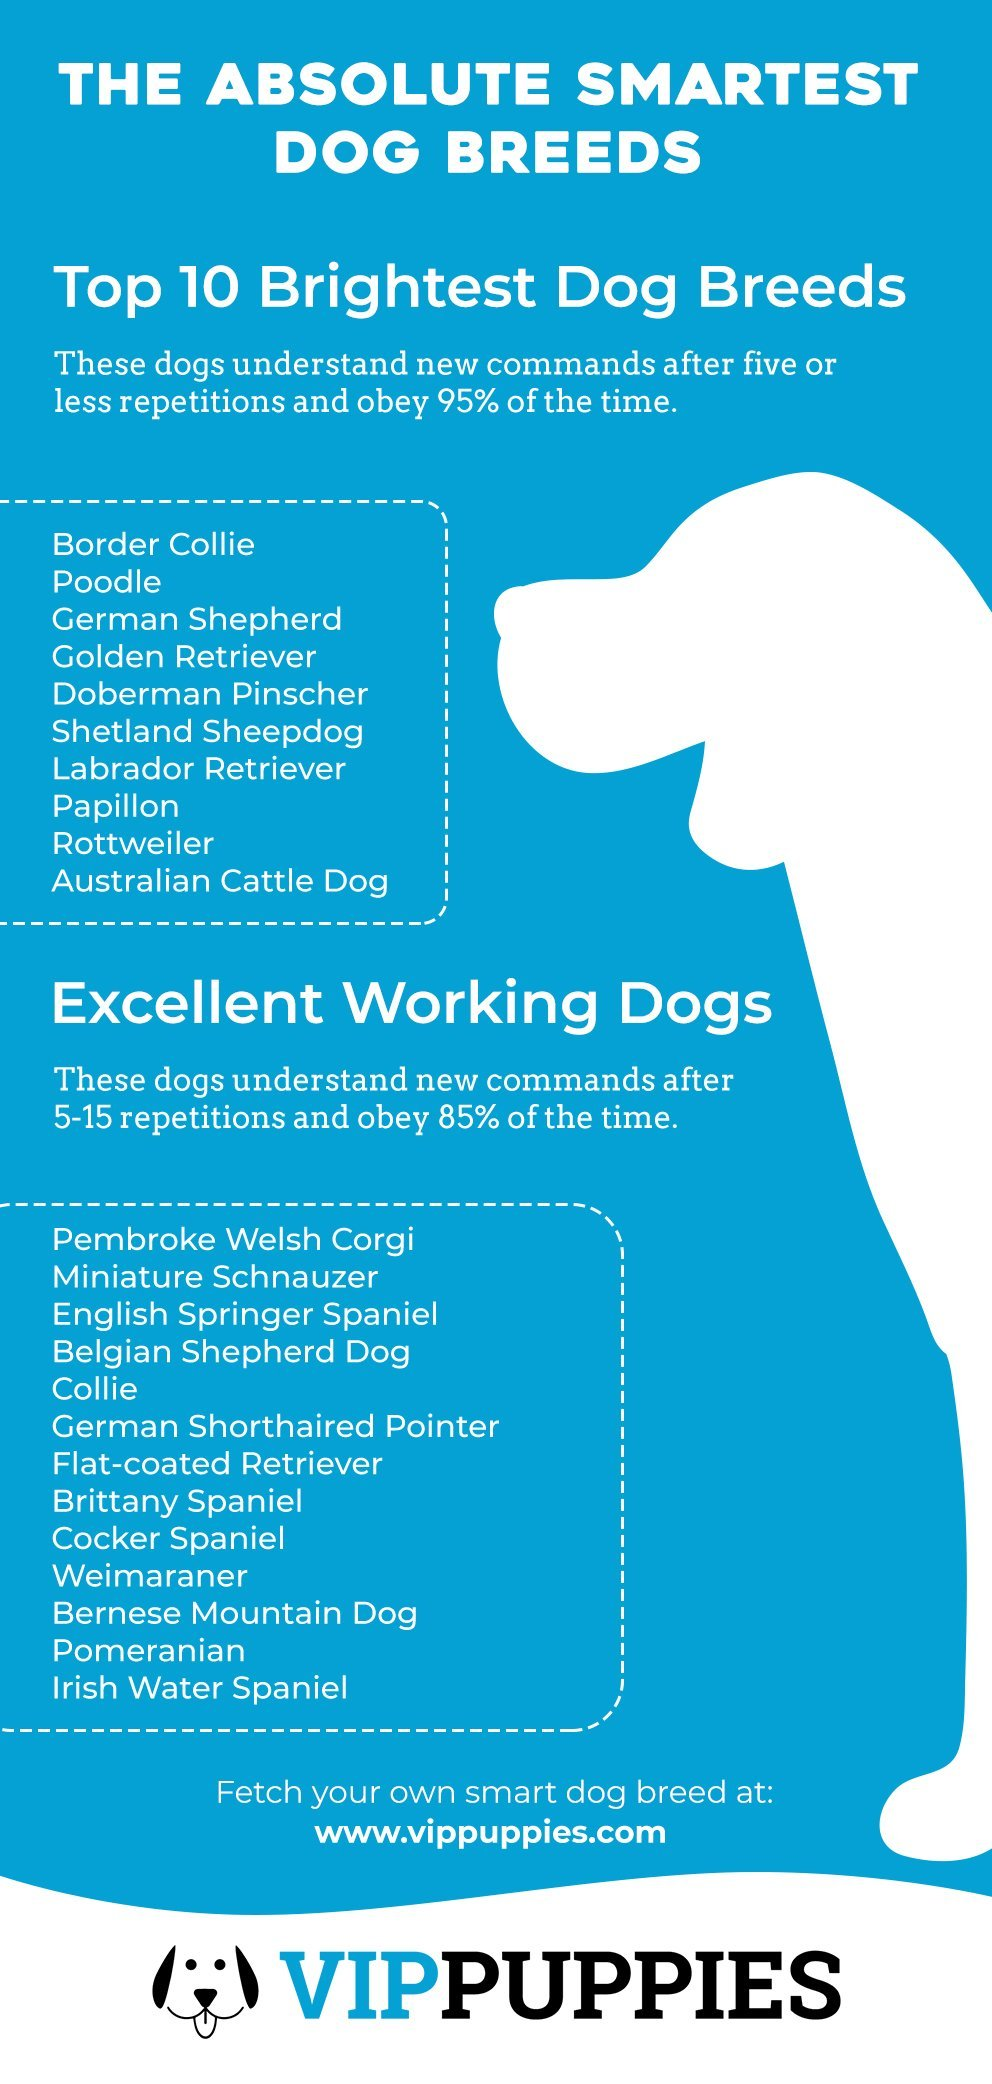 The Absolute Smartest Dog Breeds Infographic